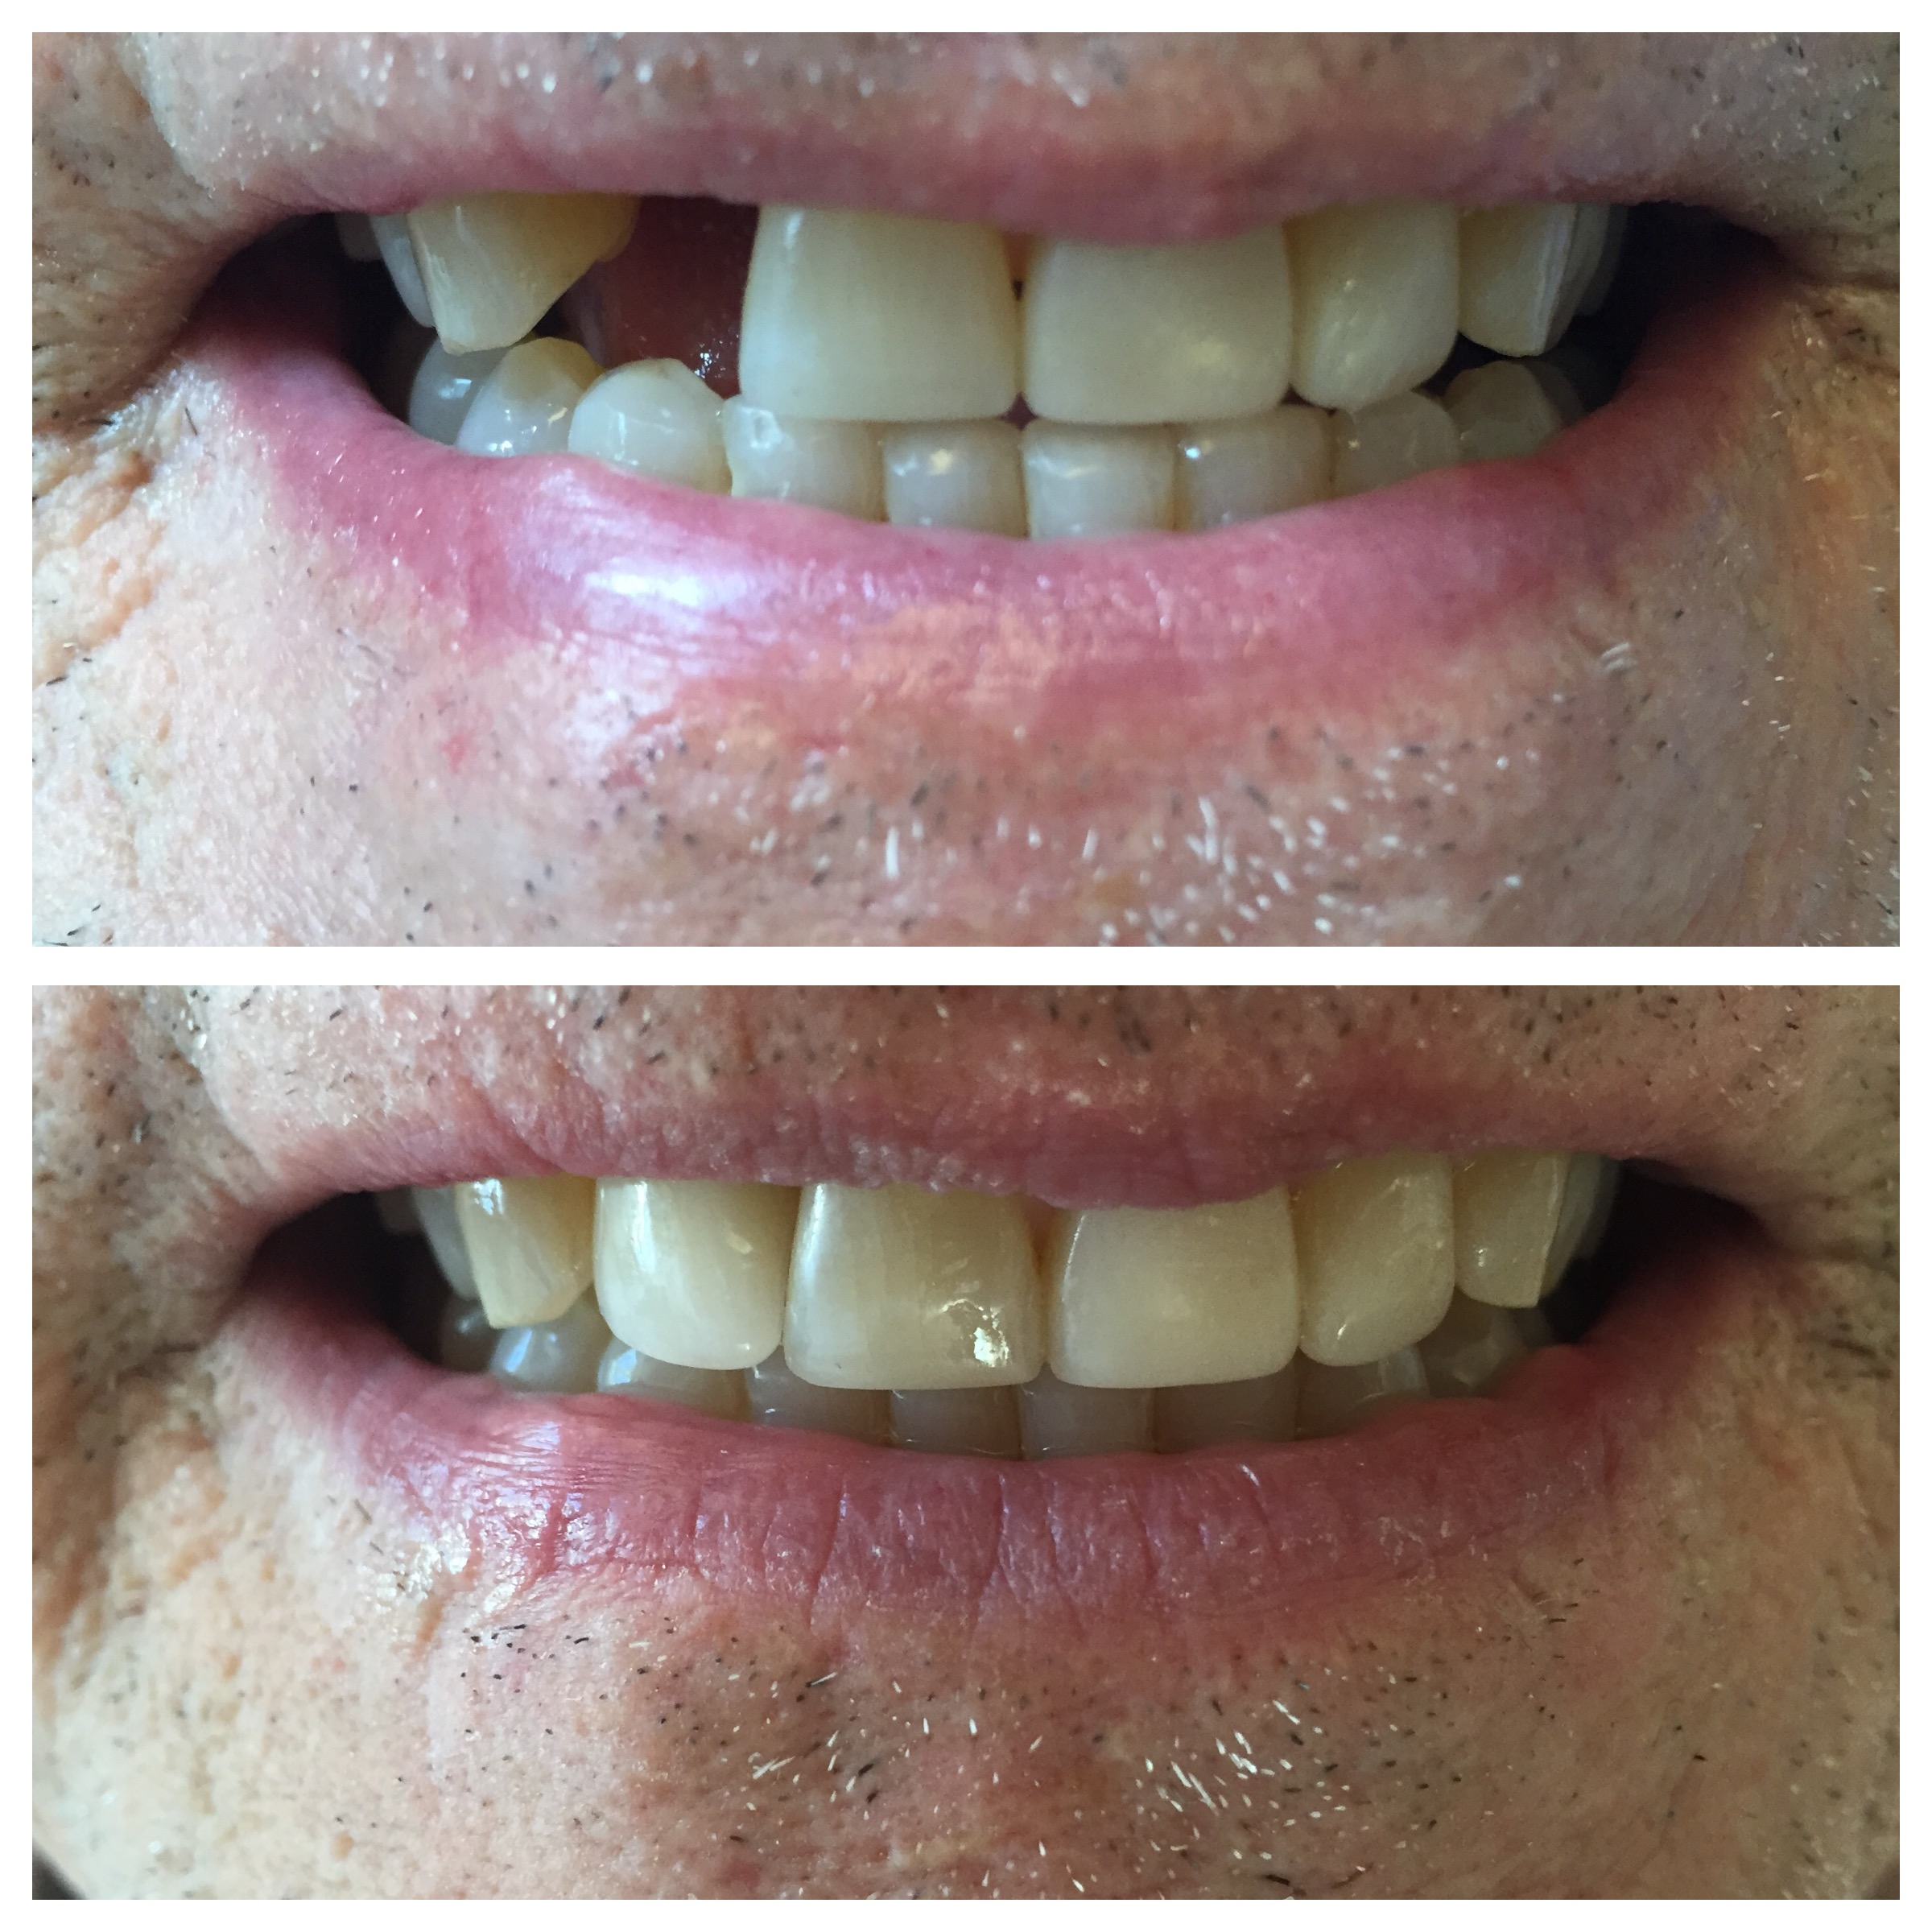 THANKS TO A DENTAL IMPLANT MY PATIENT GOT ONE OF HIS FRONT TEETH BACK!